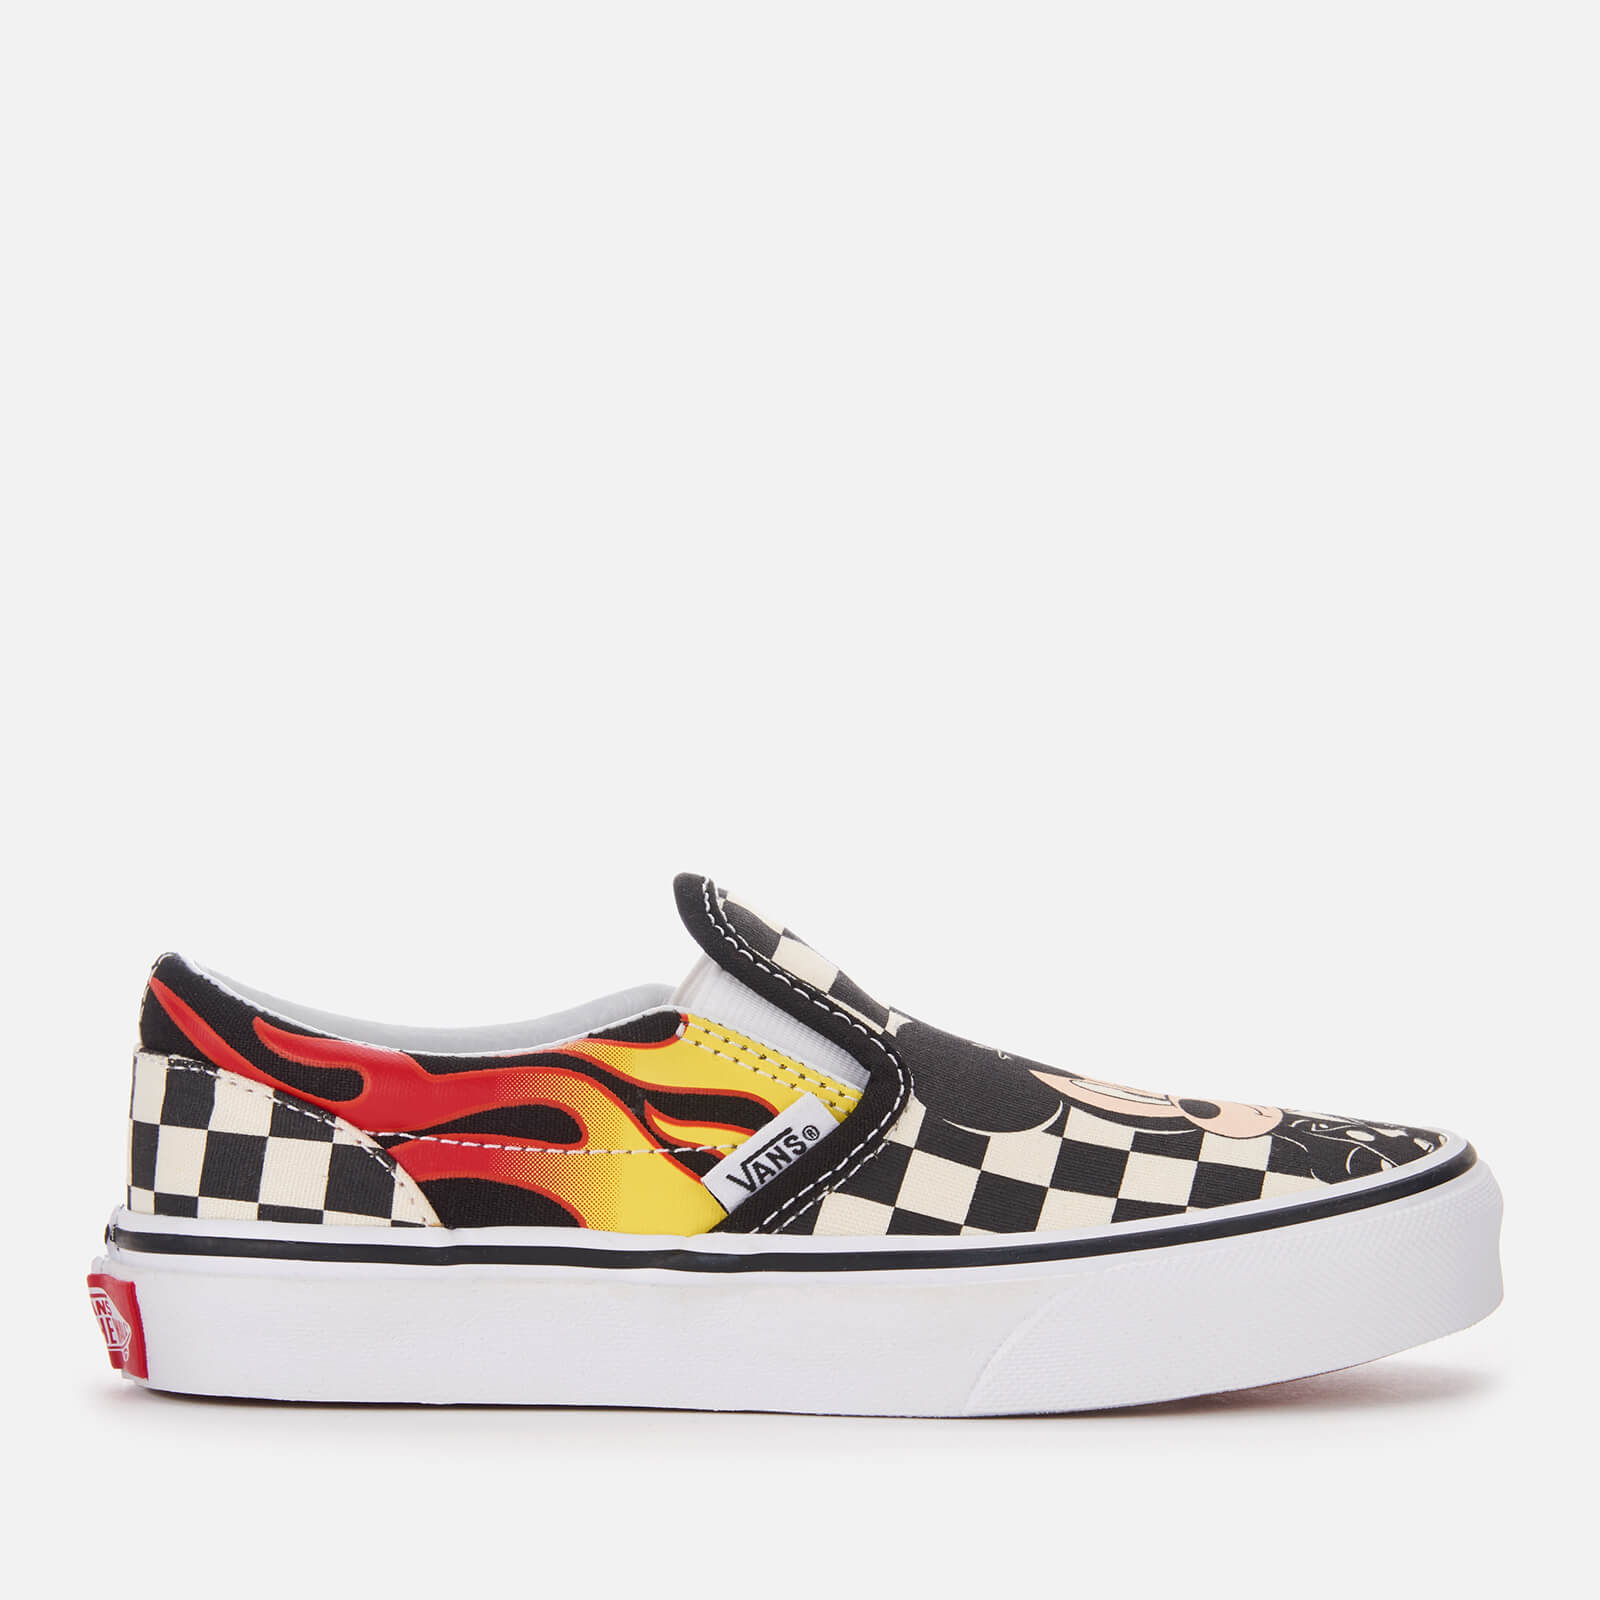 f5bf877762 Vans Kid s Disney Mickey   Minnie Classic Slip-On Trainers - Checker Flame  Junior Clothing